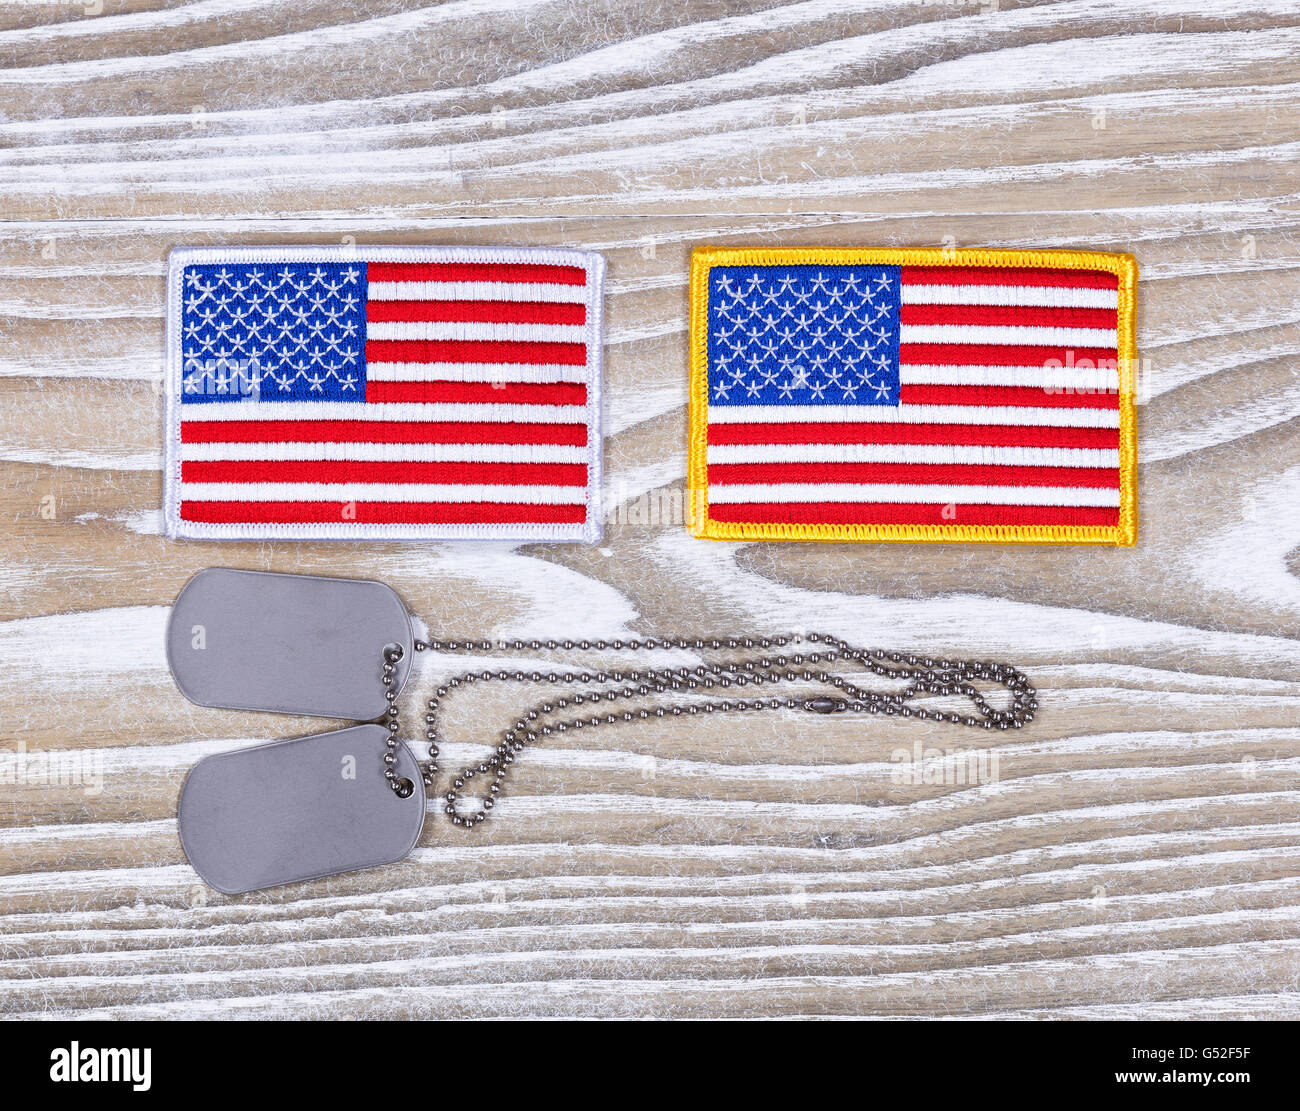 Small USA flag patches and military identification tags on